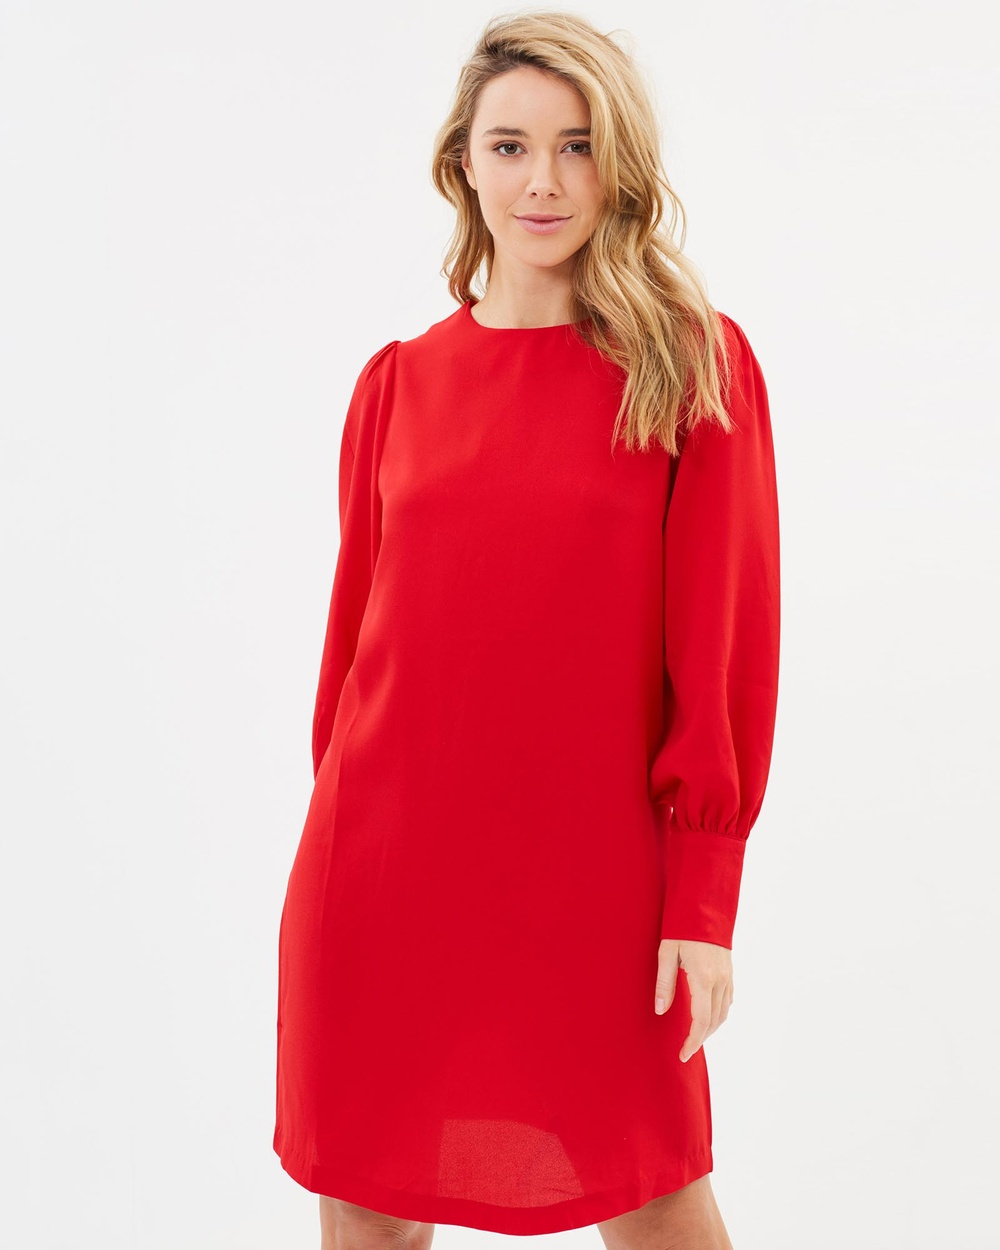 Otto Mode Robyn Dress Dresses Red Robyn Dress